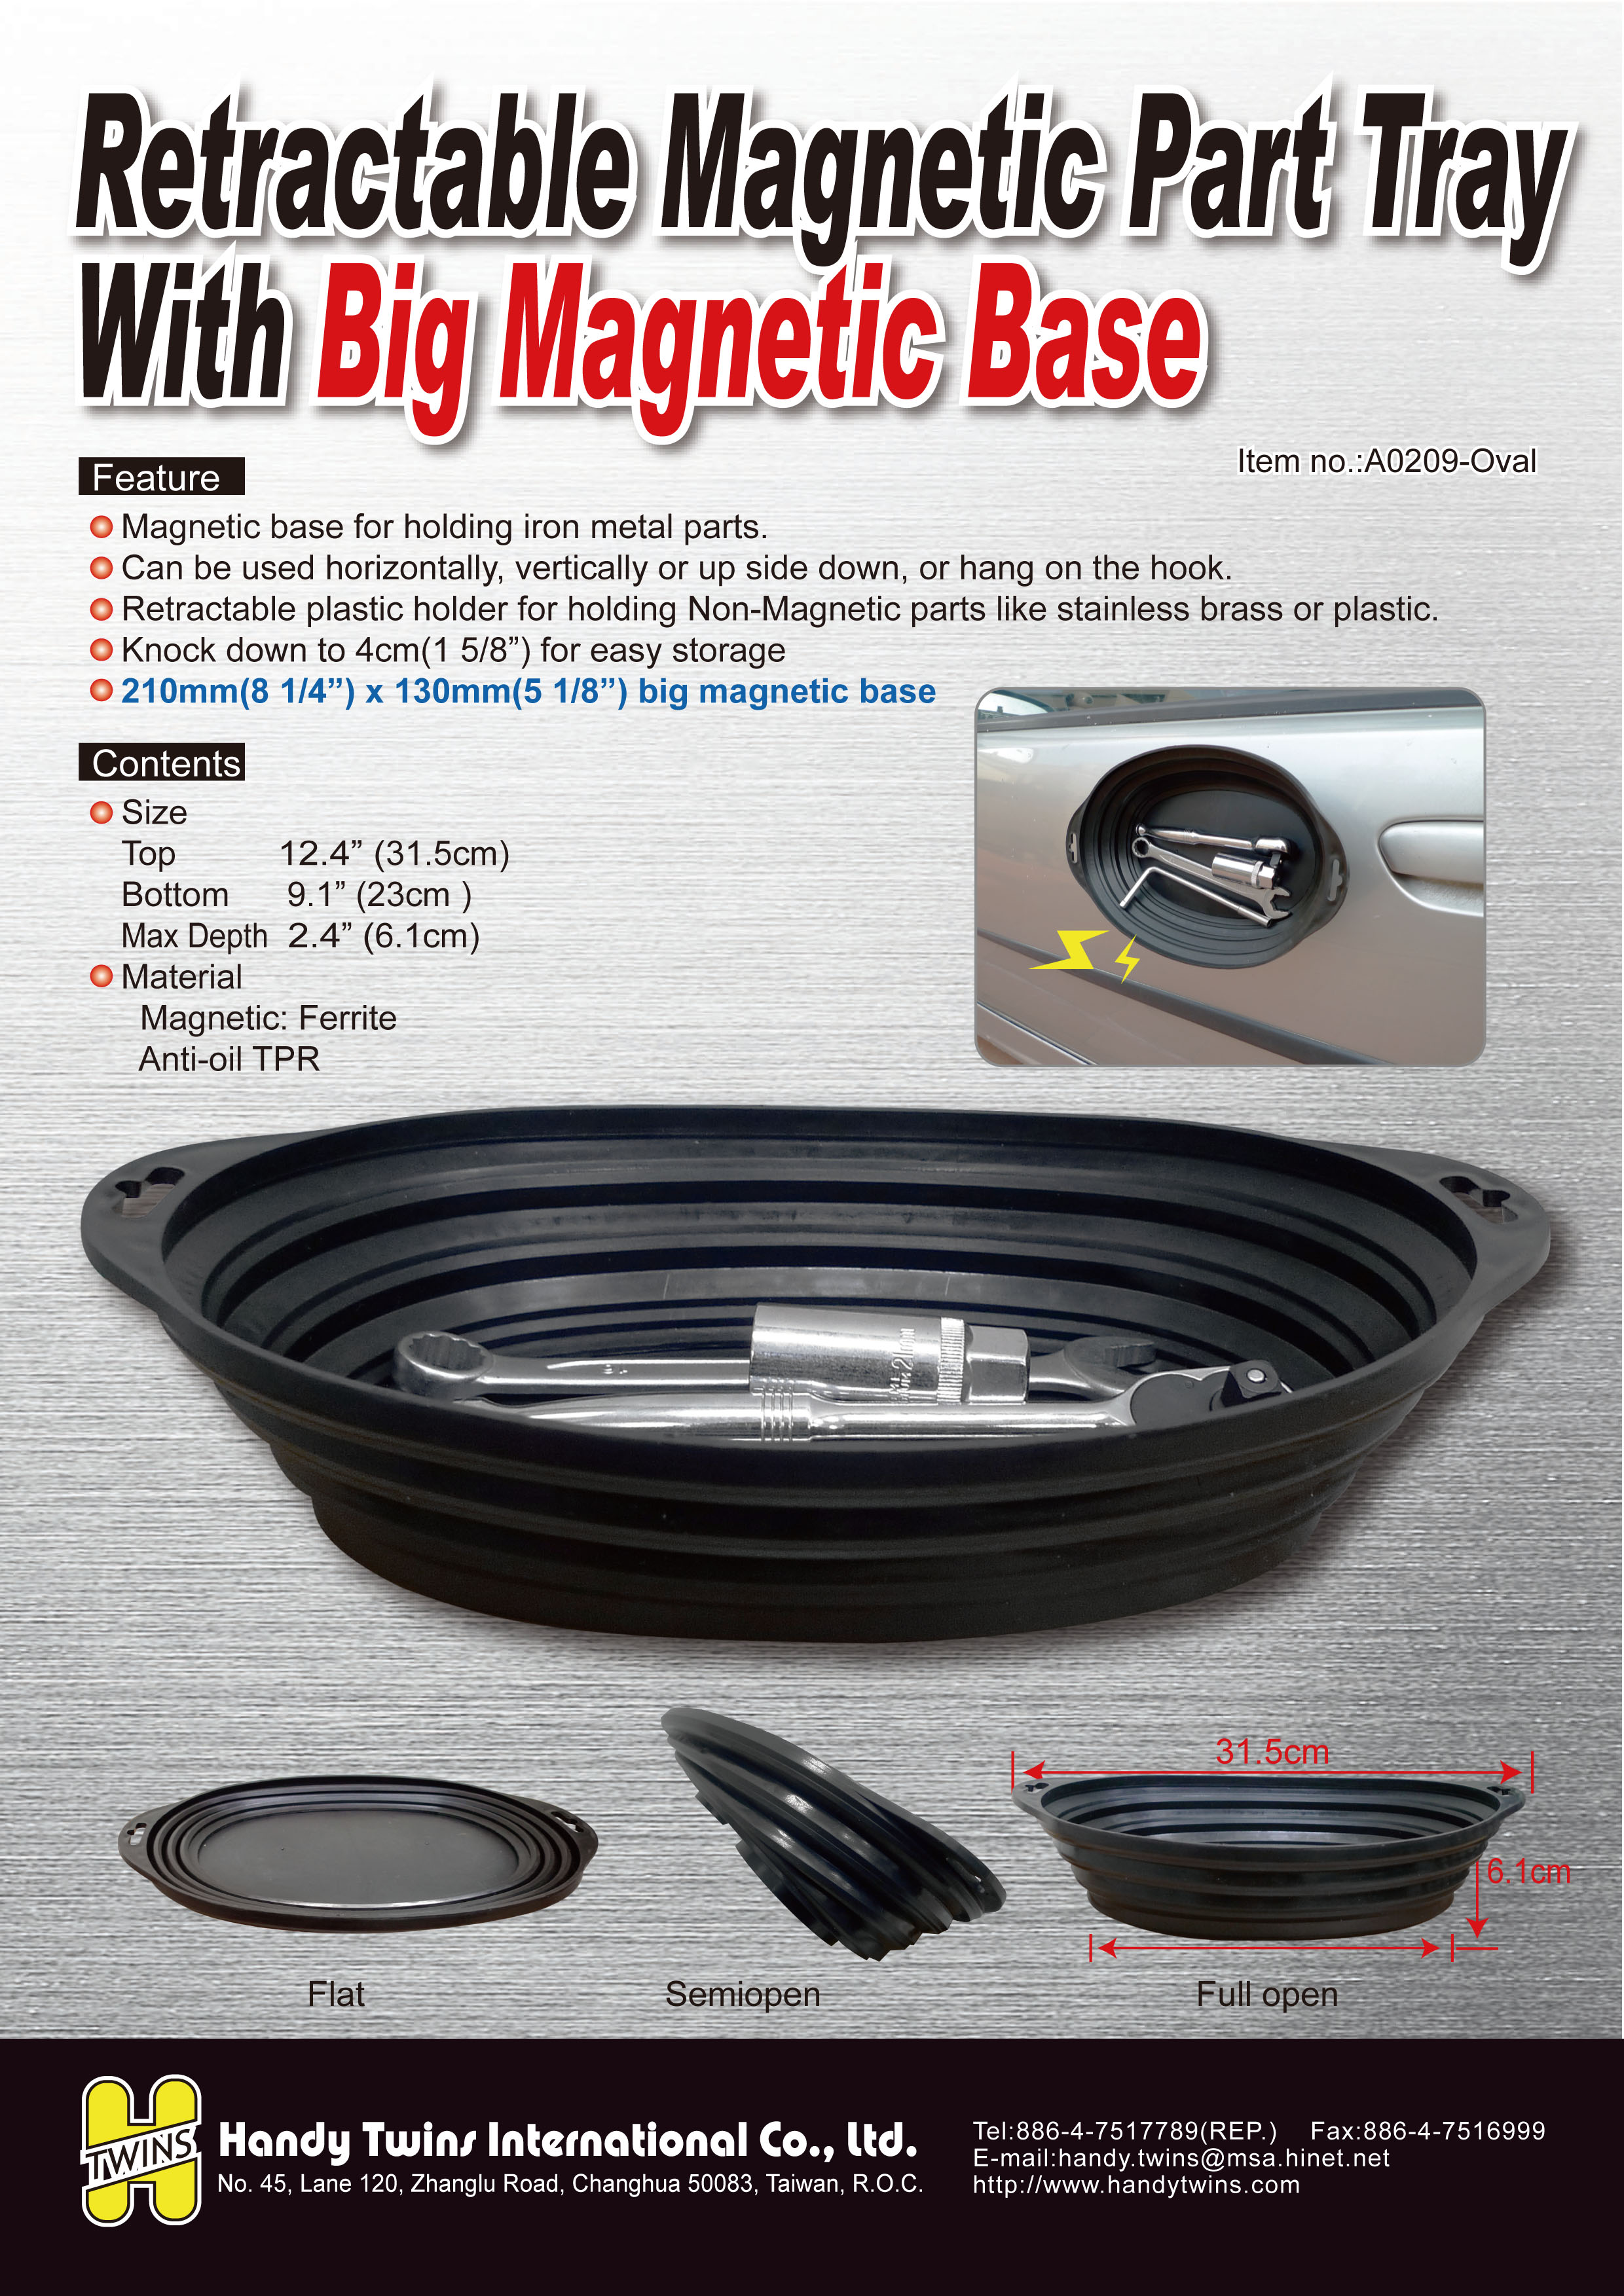 High quality Oval Foldable Retractable Auto repair Tool Trolley Magnetic  Part Tray Made in Taiwan, View Magnetic Part Tray, Handy Twins Product